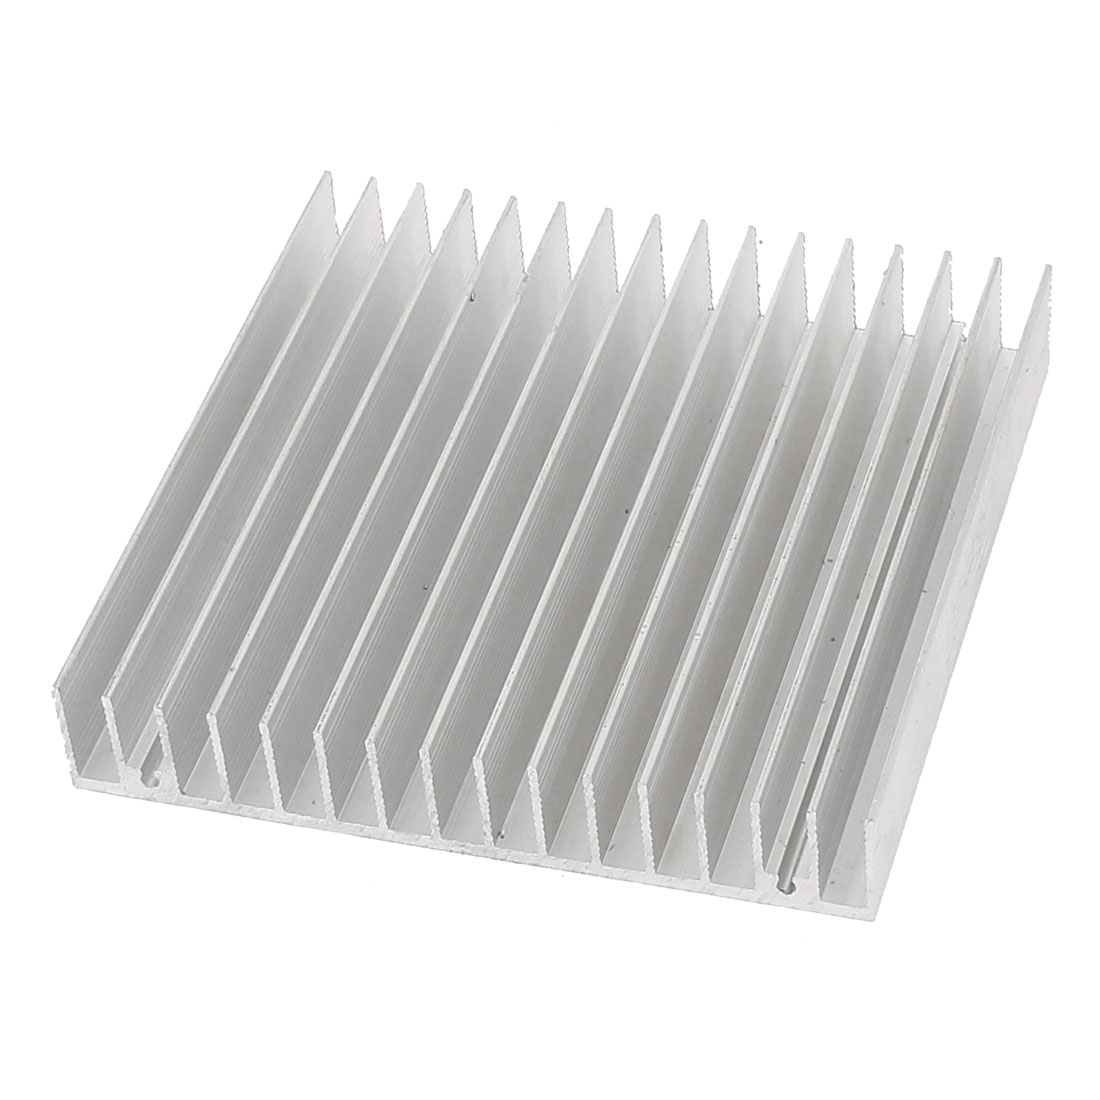 Silver Tone Square Aluminium Radiator Heatsink Heat Sink 100 x 100 x 18mm